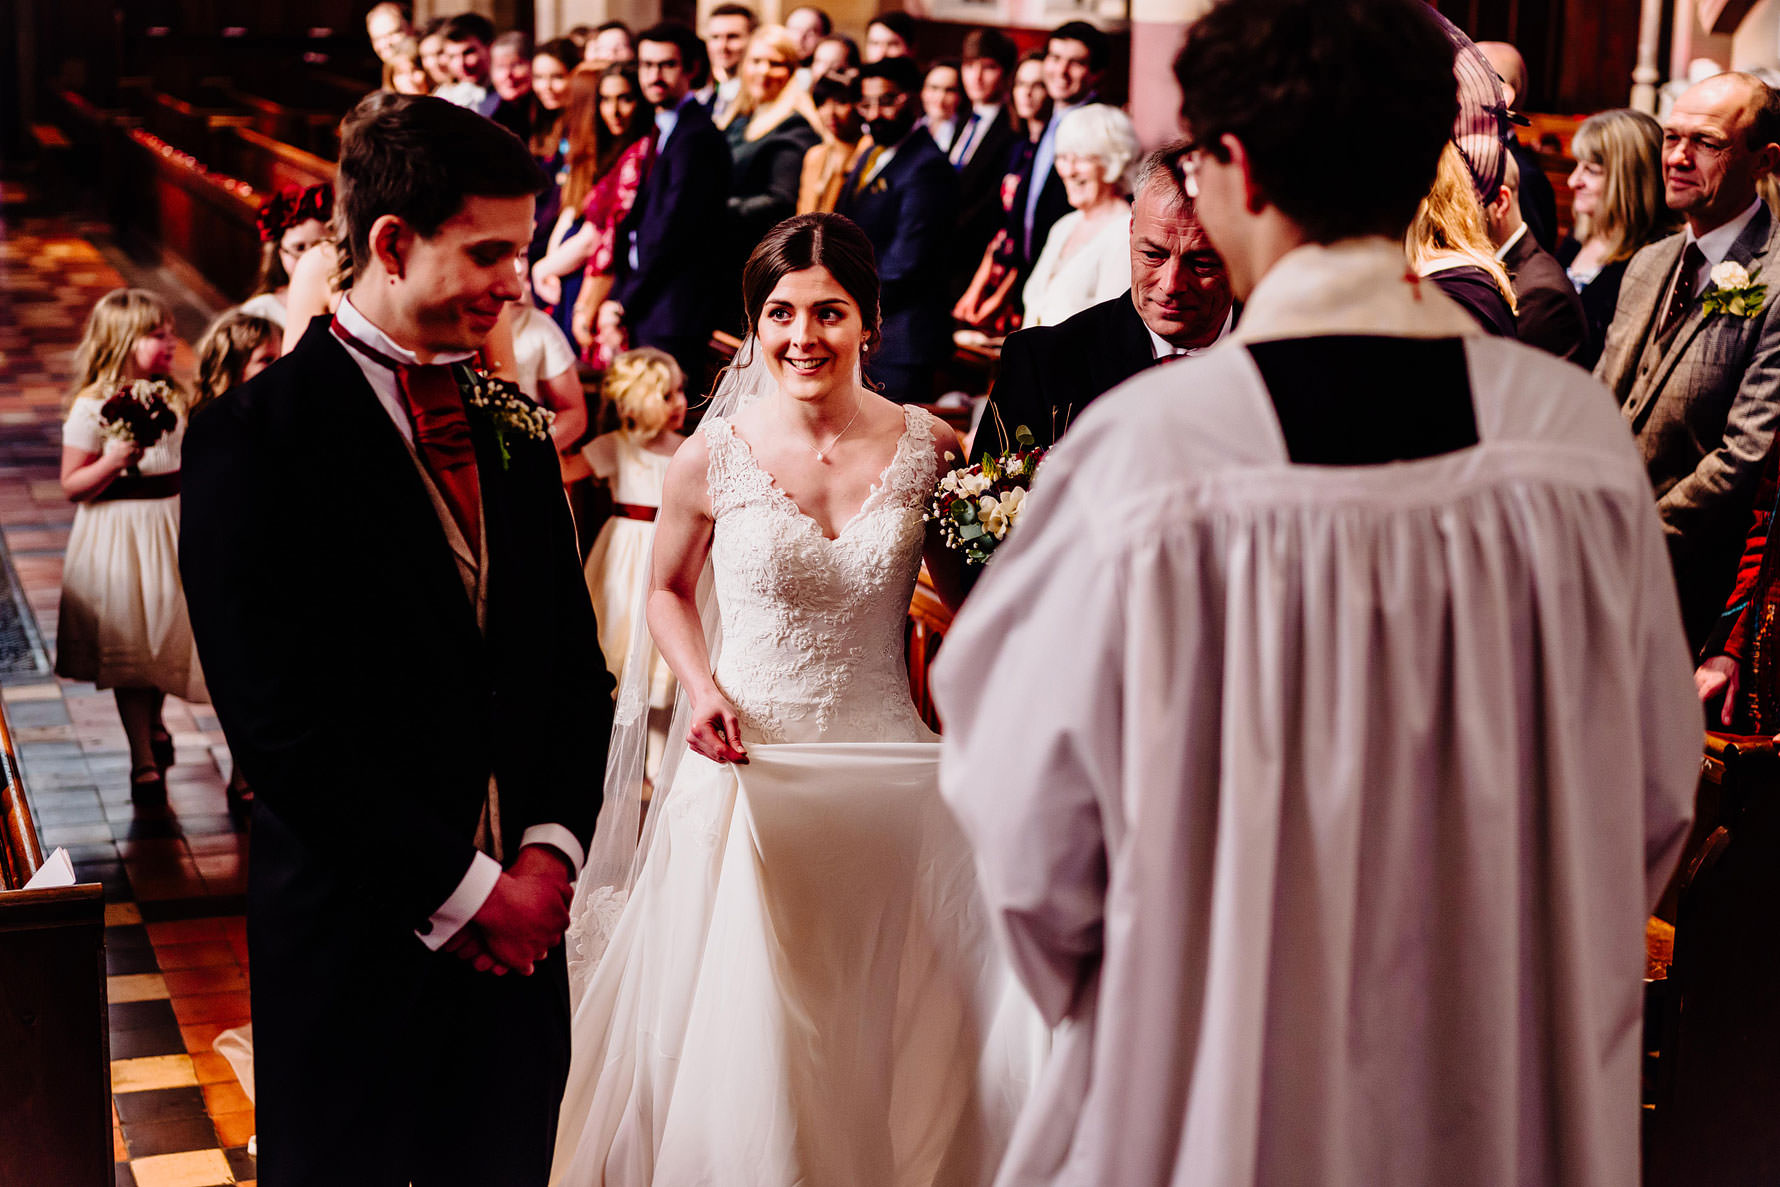 an excited bride sees her groom for the first time